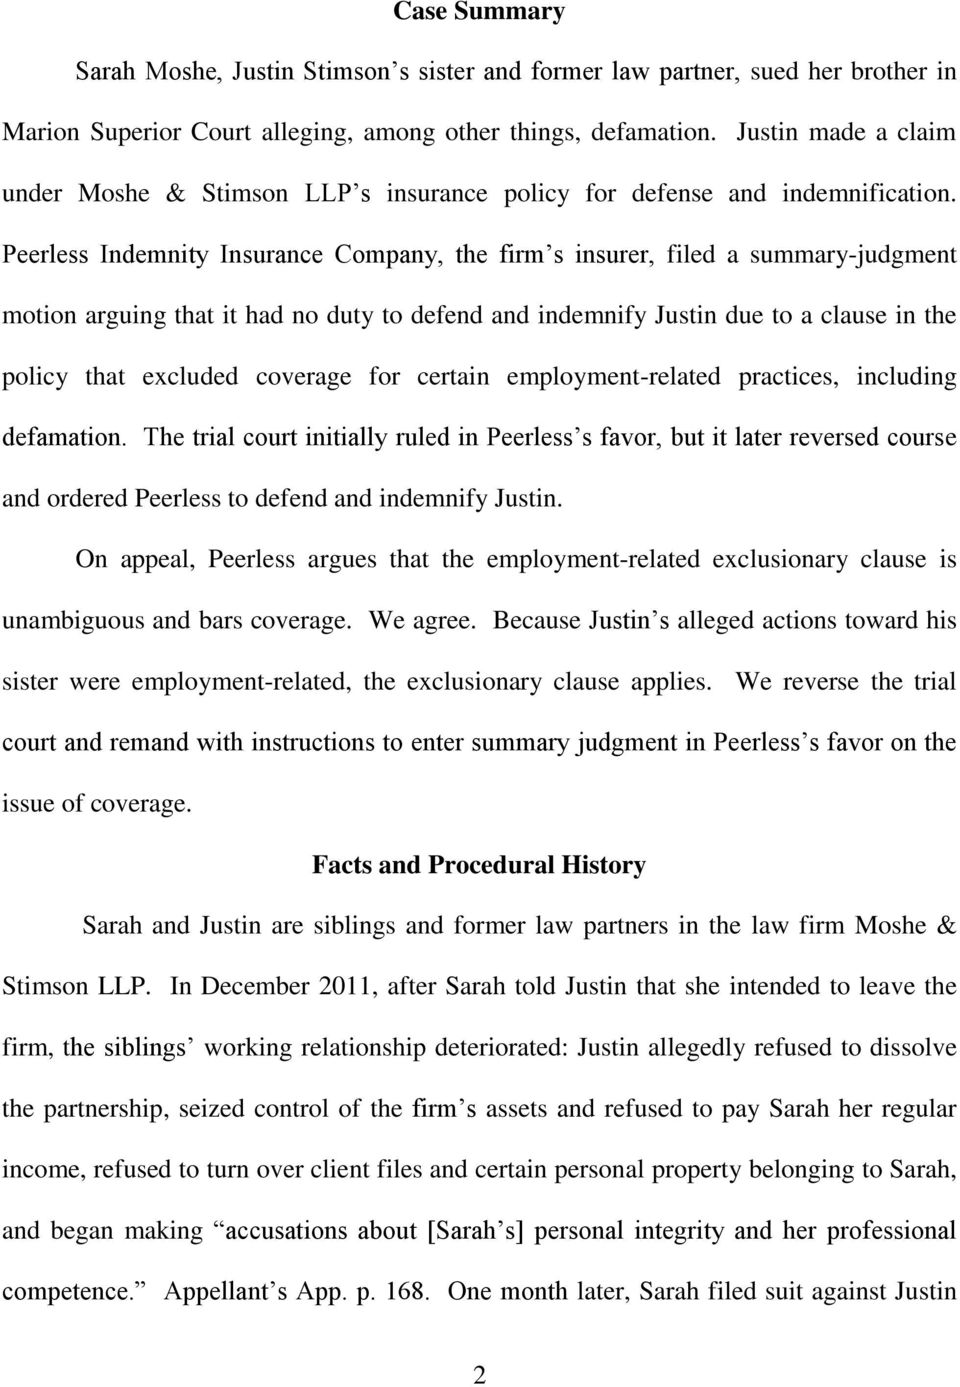 Peerless Indemnity Insurance Company, the firm s insurer, filed a summary-judgment motion arguing that it had no duty to defend and indemnify Justin due to a clause in the policy that excluded